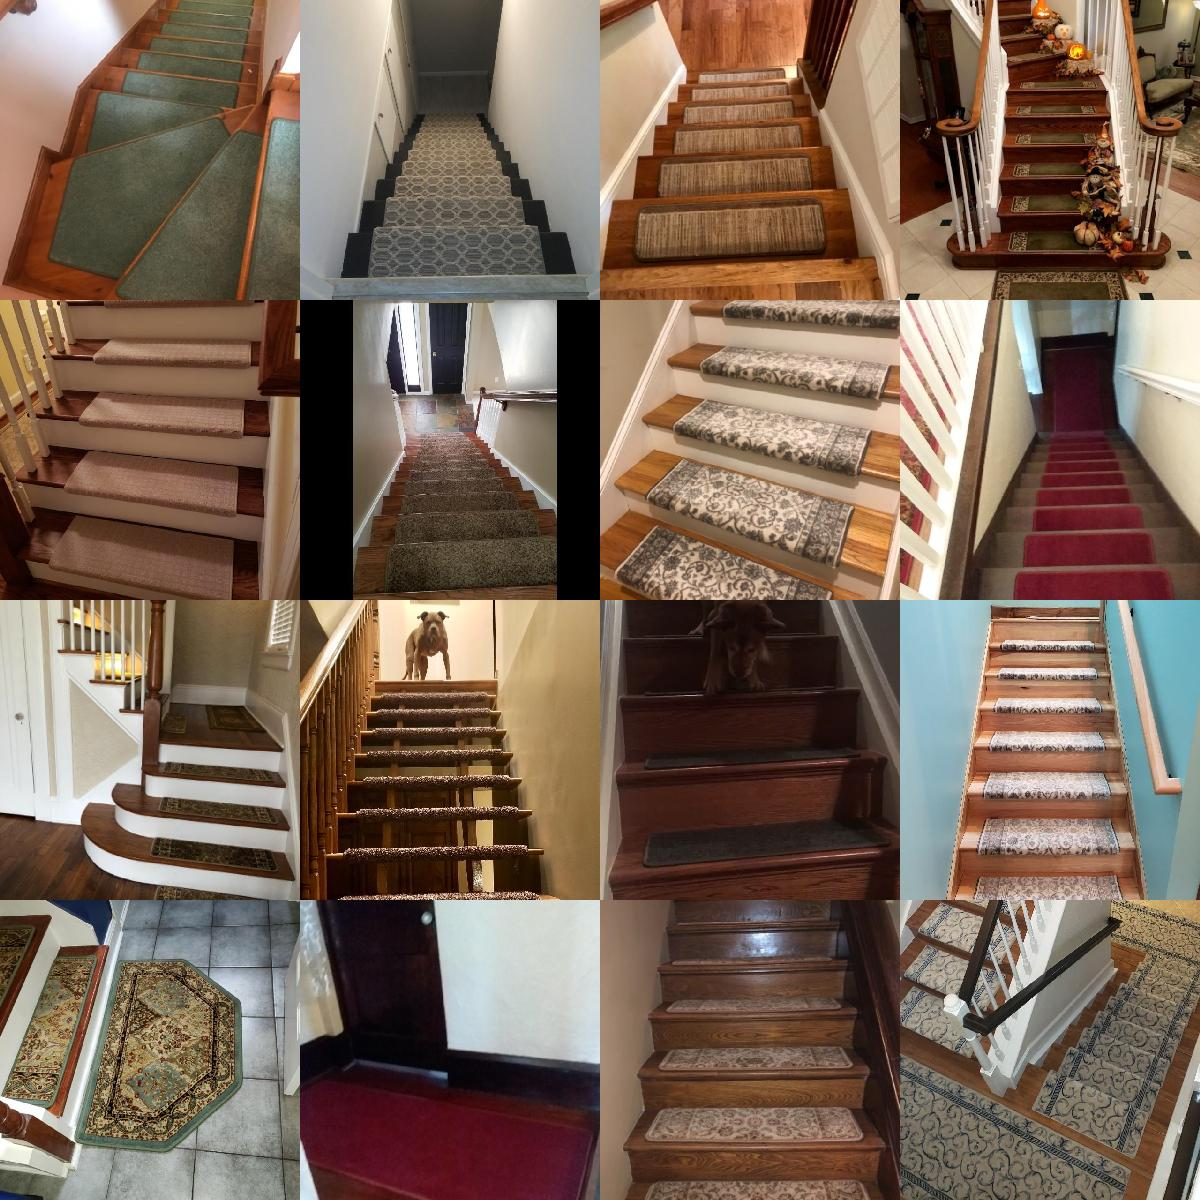 Gallery Of Dean Stair Treads Customer Experiences.